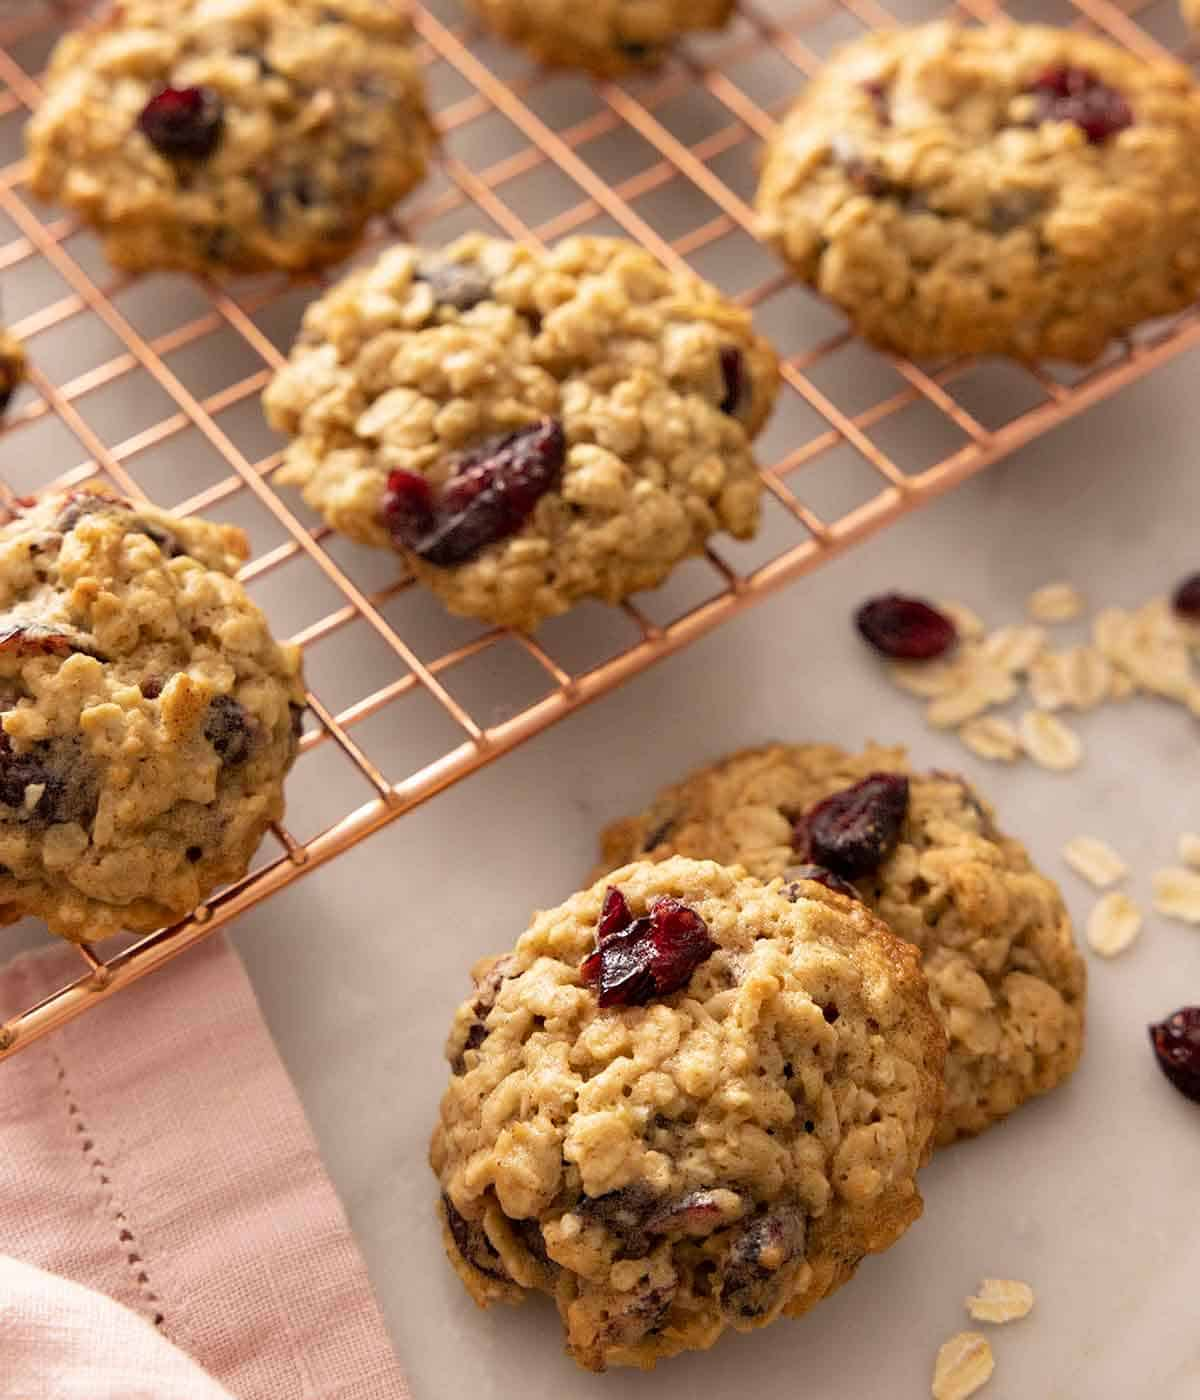 Oatmeal cranberry cookies on a cooling rack and on the counter.